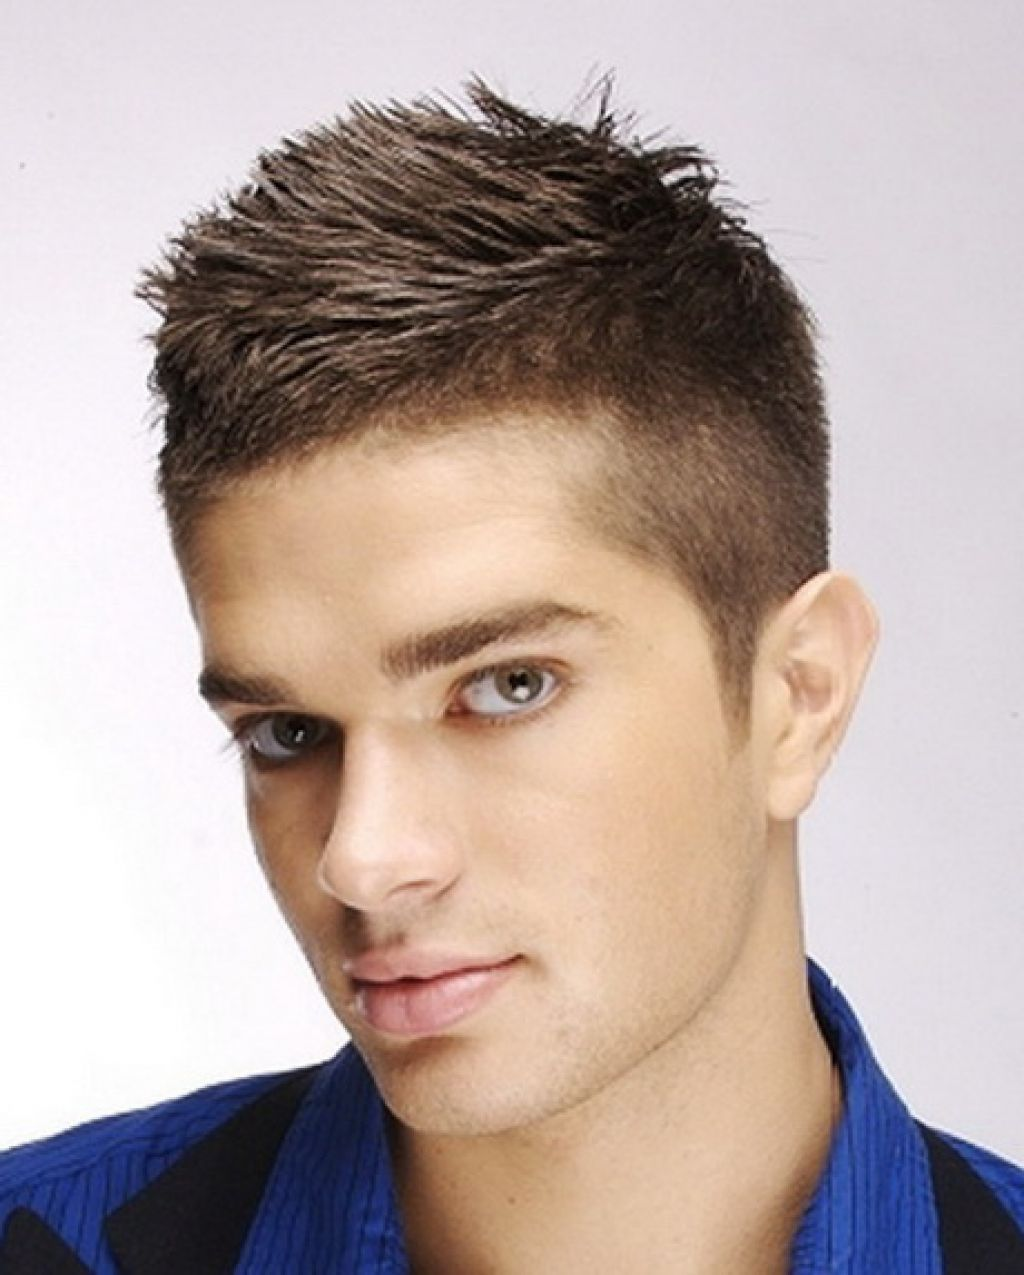 Cool Hairstyles For Men With Short Hair Easy Styling , Using A